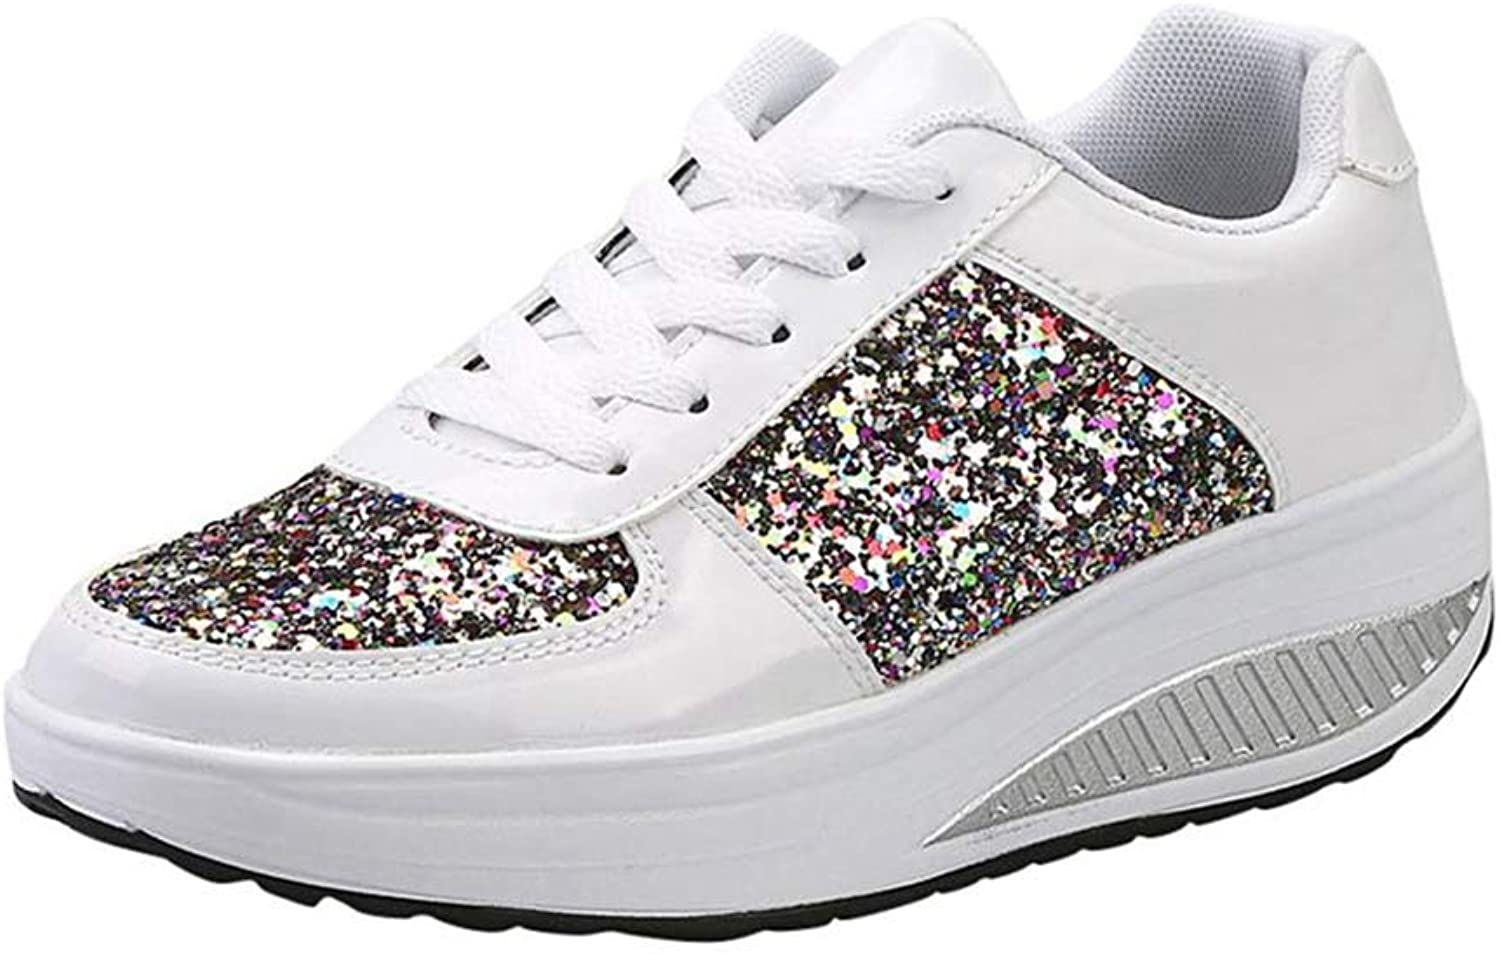 T-JULY Women's Ladies Wedges Sneakers Sequins Shake shoes Women shoes Fashion Girls Sport shoes